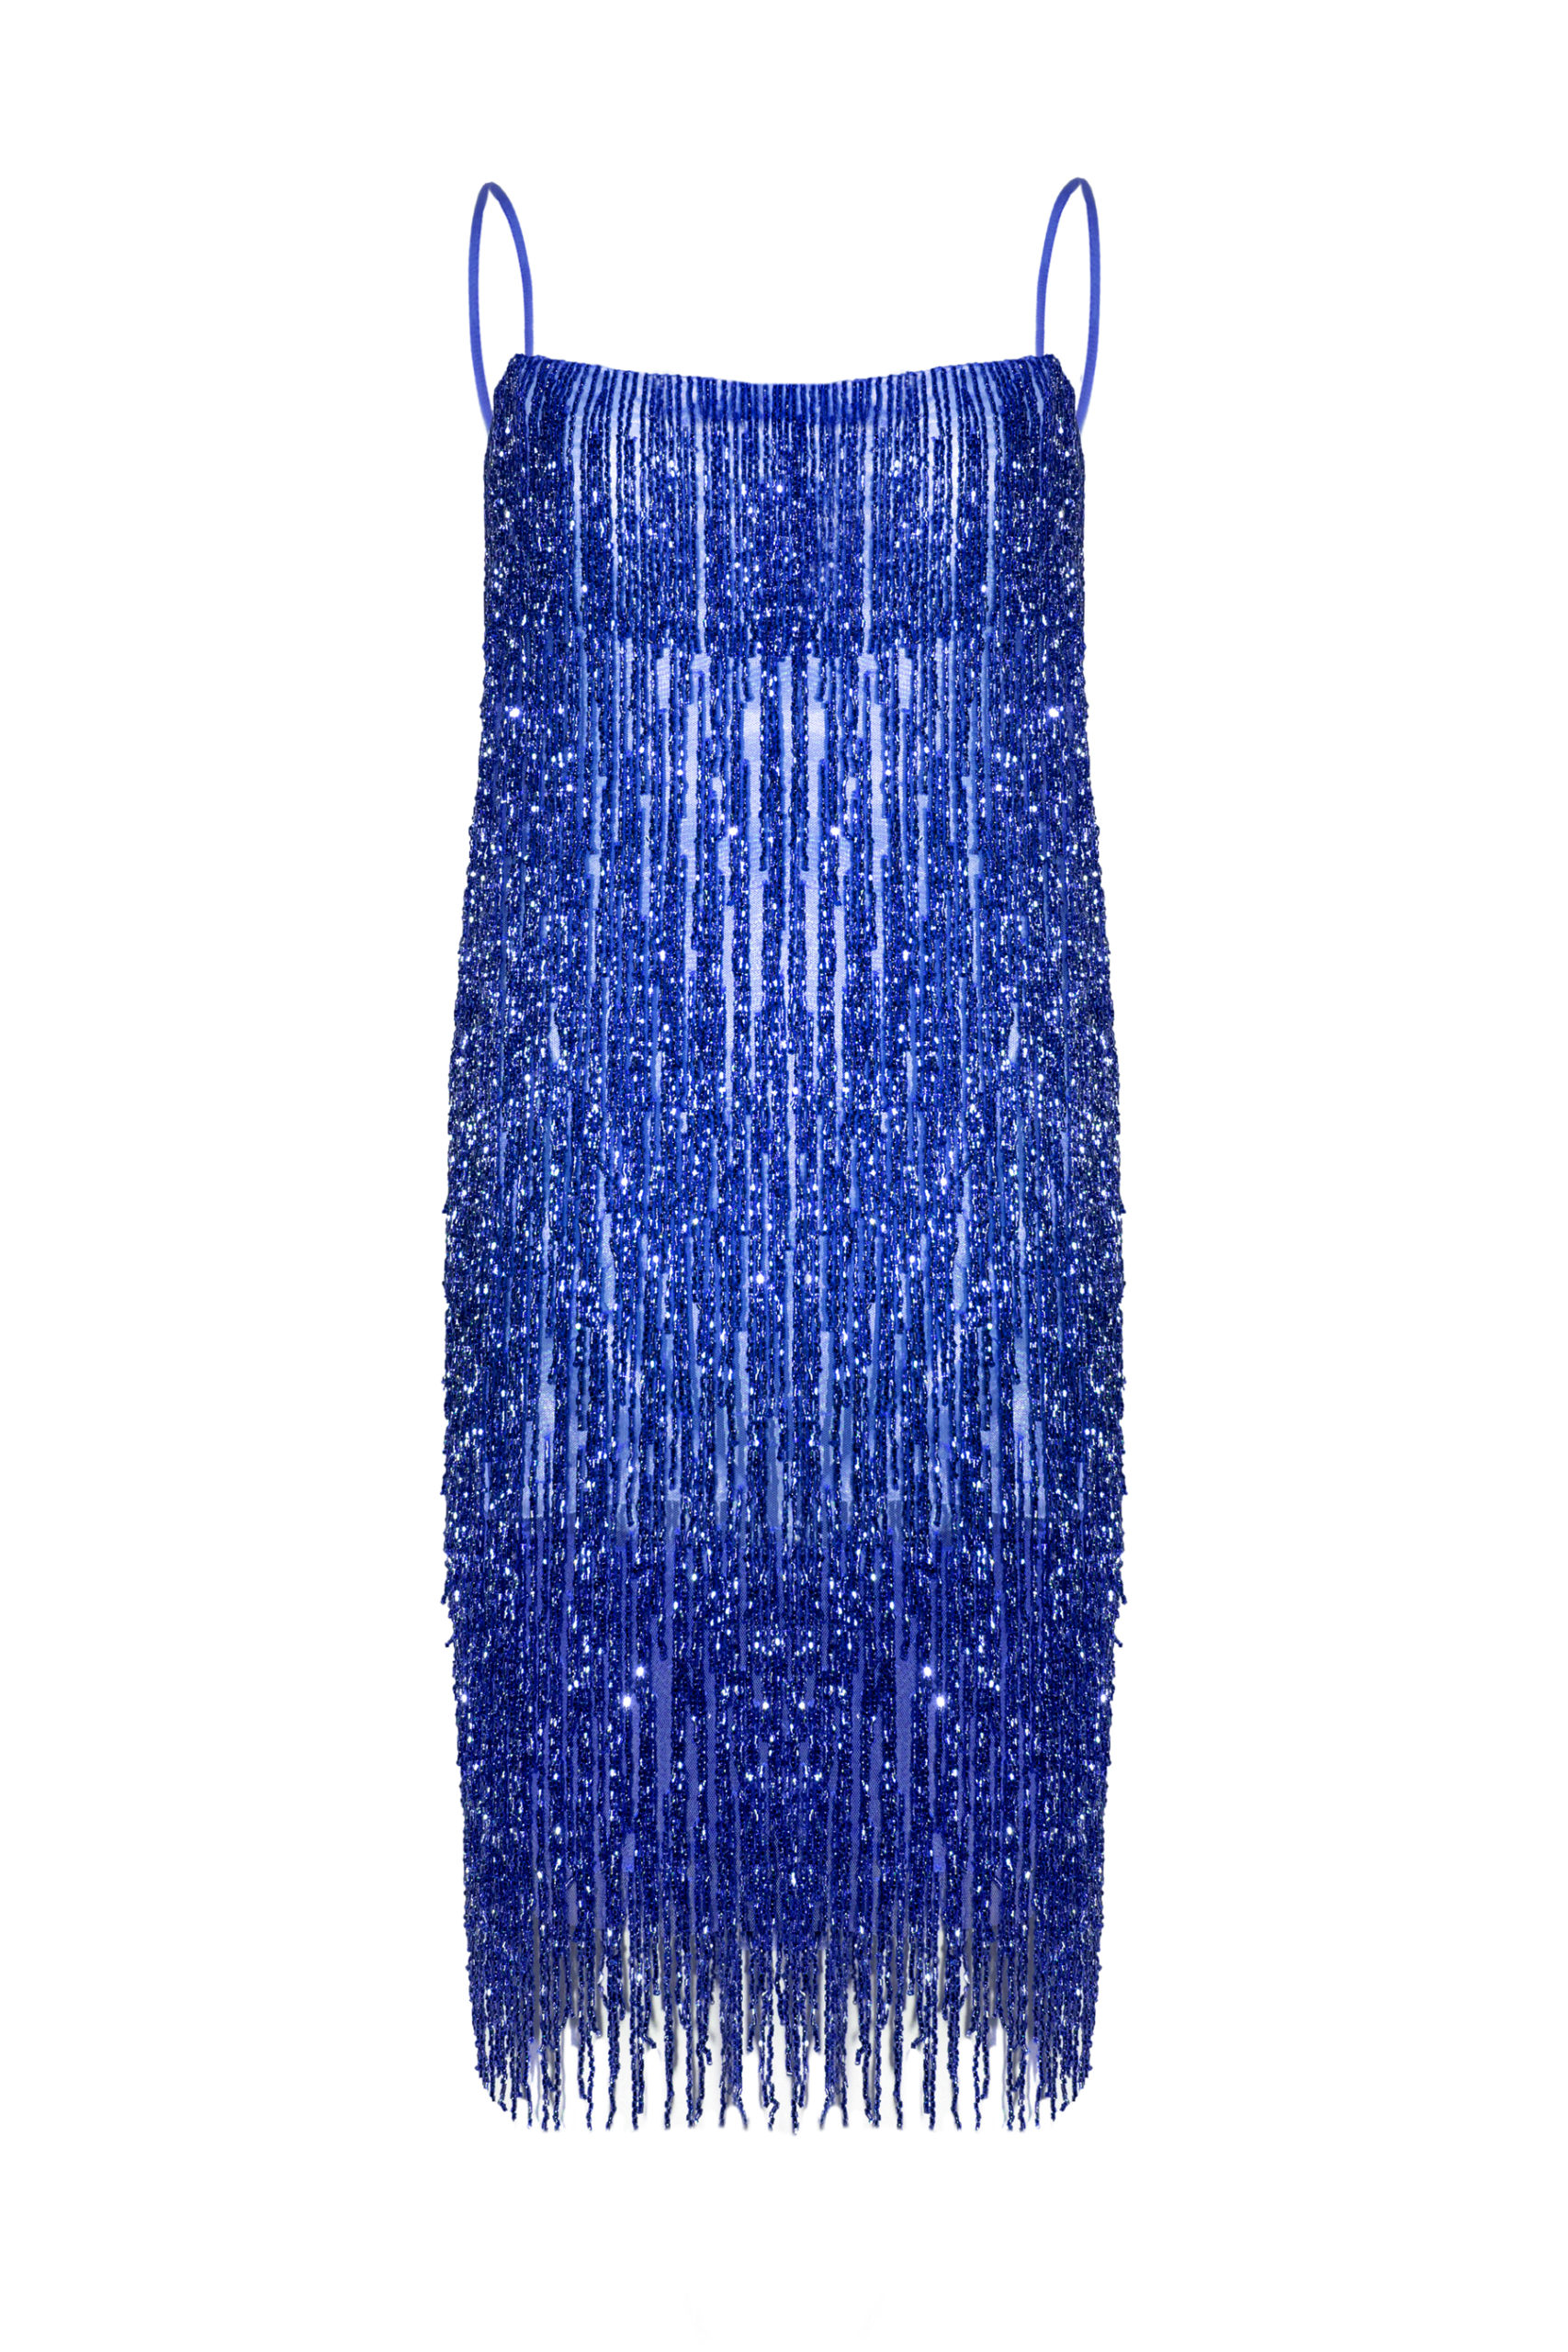 Vestido flecos azul Crystal indigo blue dress